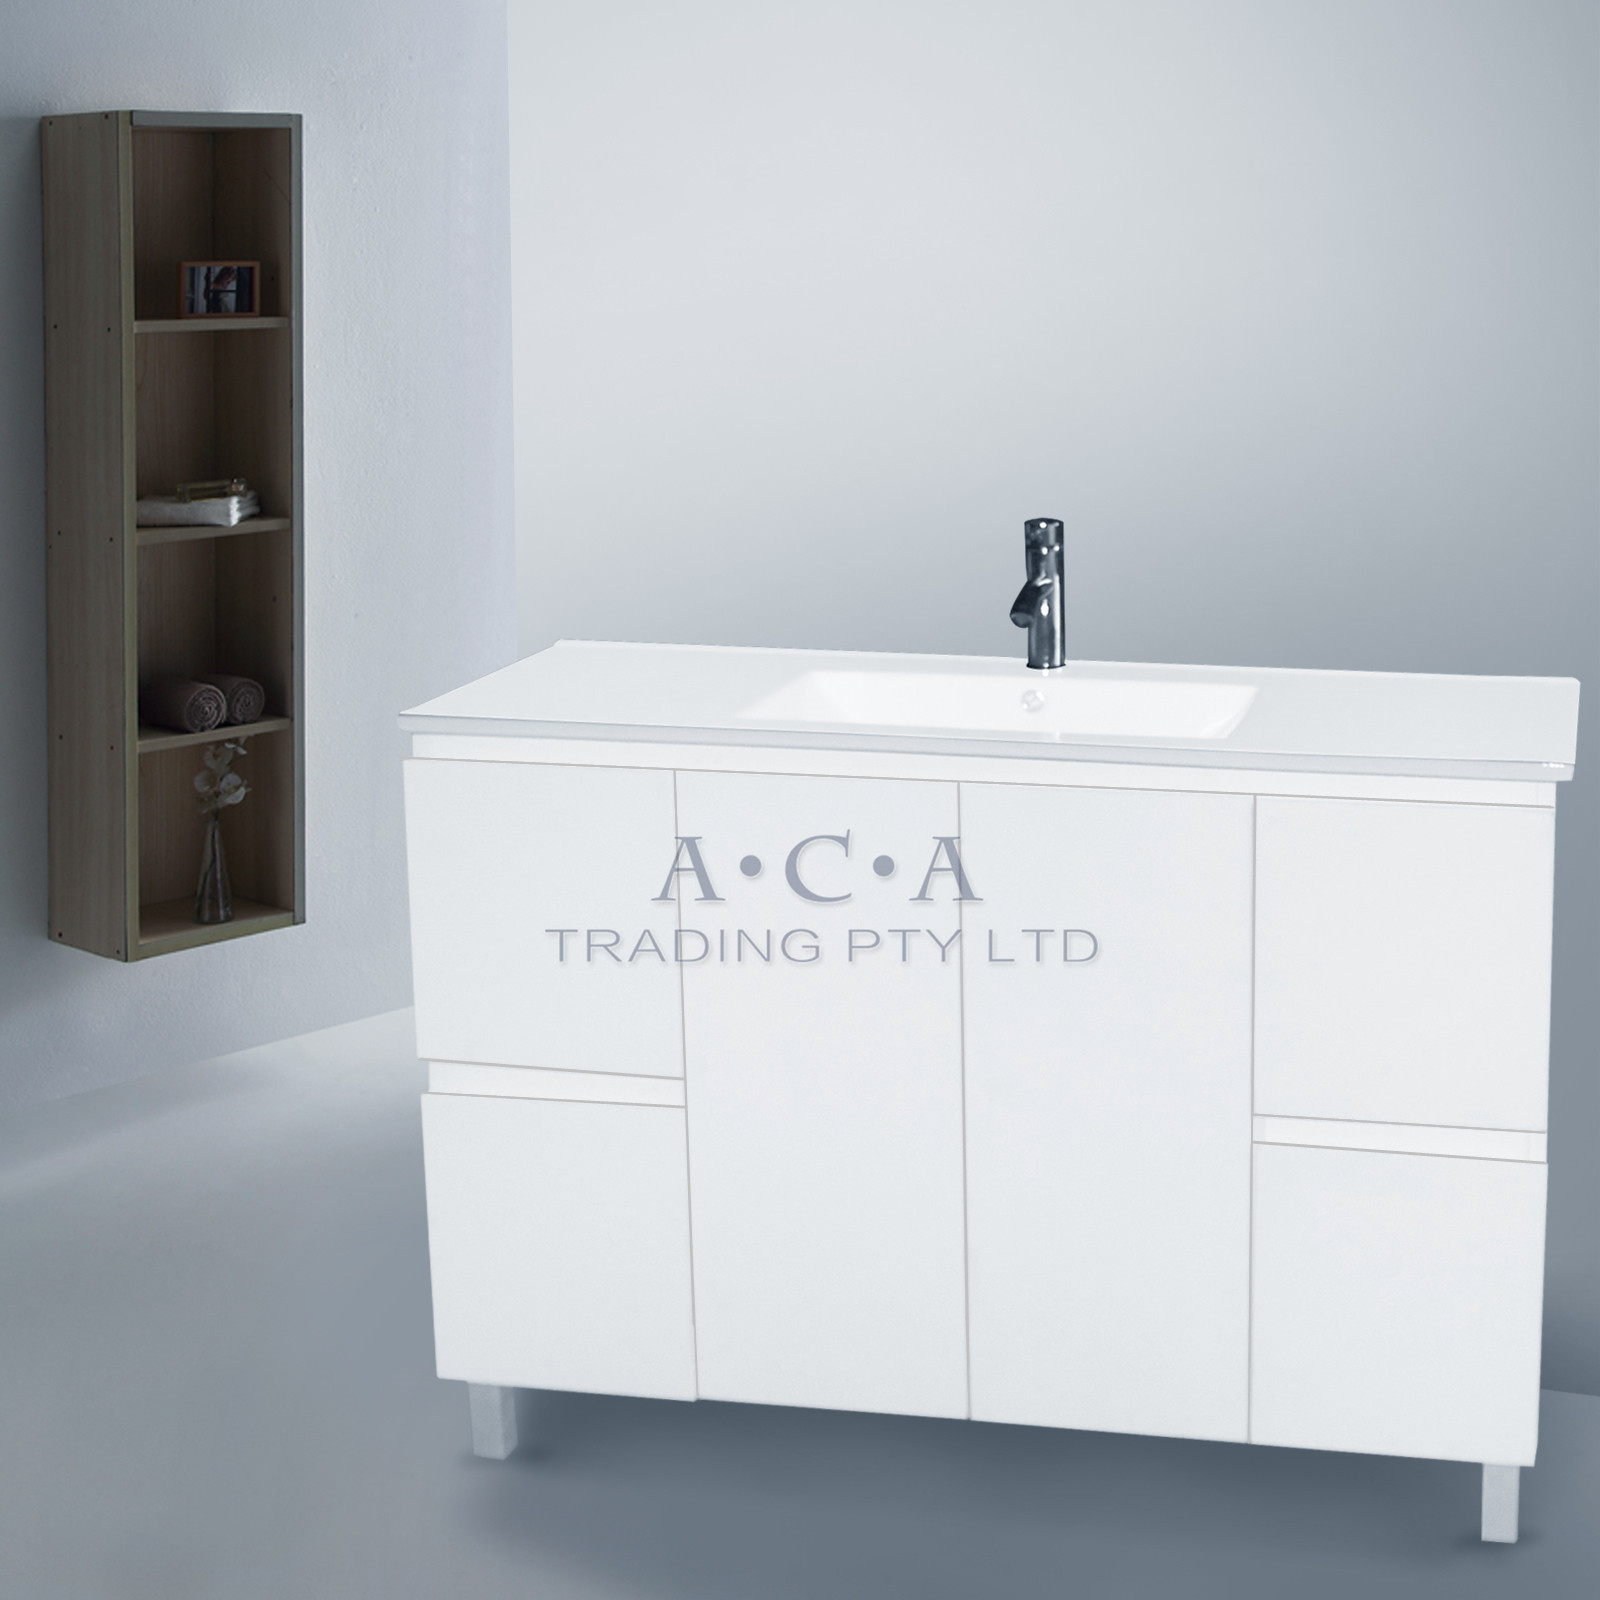 Bathroom vanity 1200mm freestanding cabinet white gloss 4 for Bathroom cabinets ebay australia